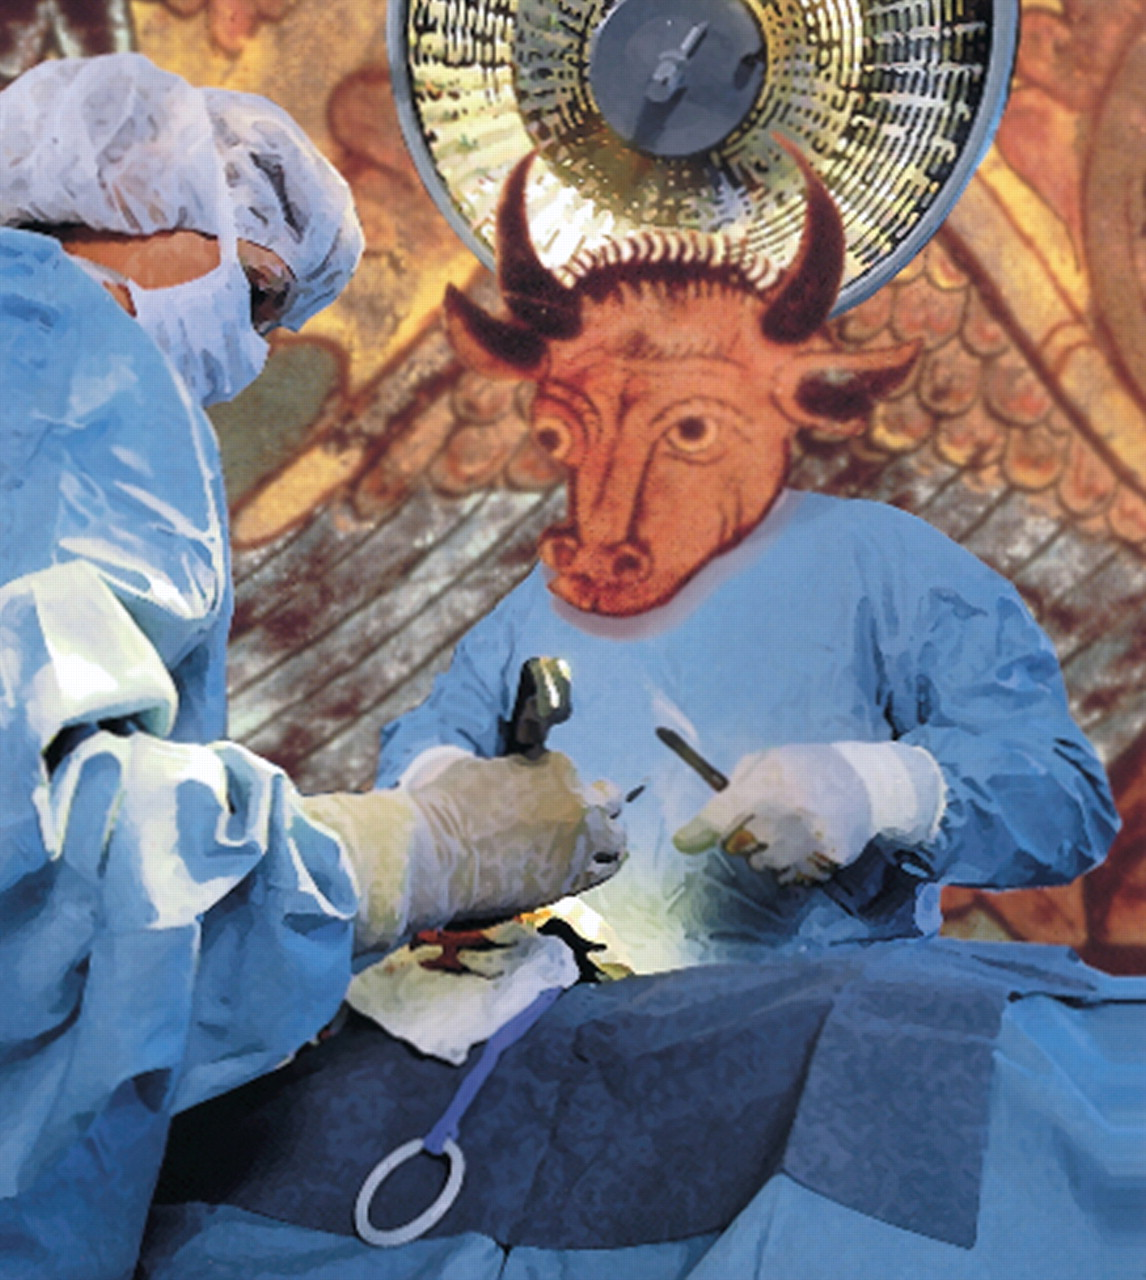 Orthopaedic surgeons: as strong as an ox and almost twice as clever